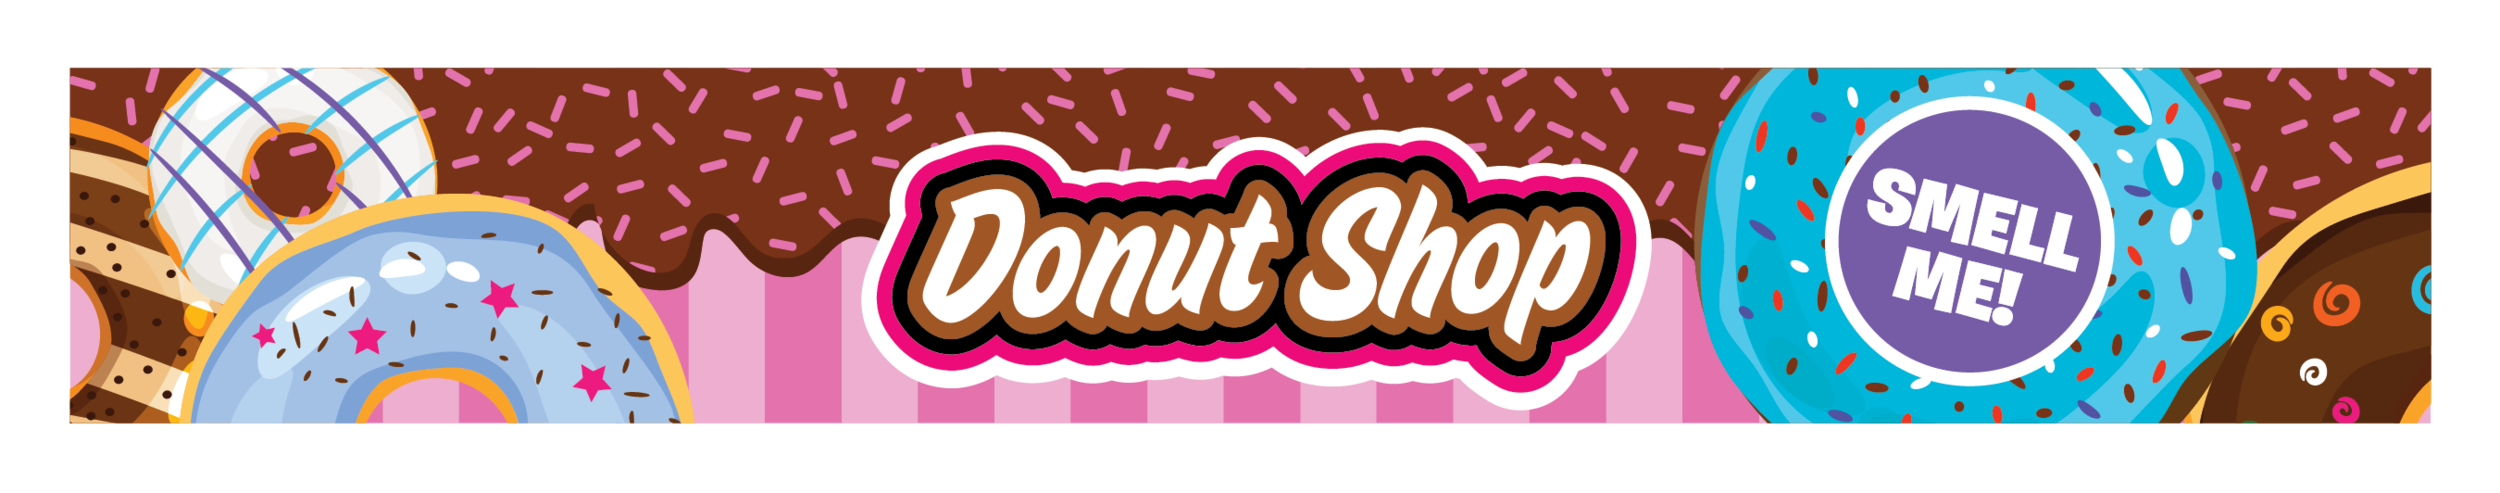 DONUT_FOOTER-01.png